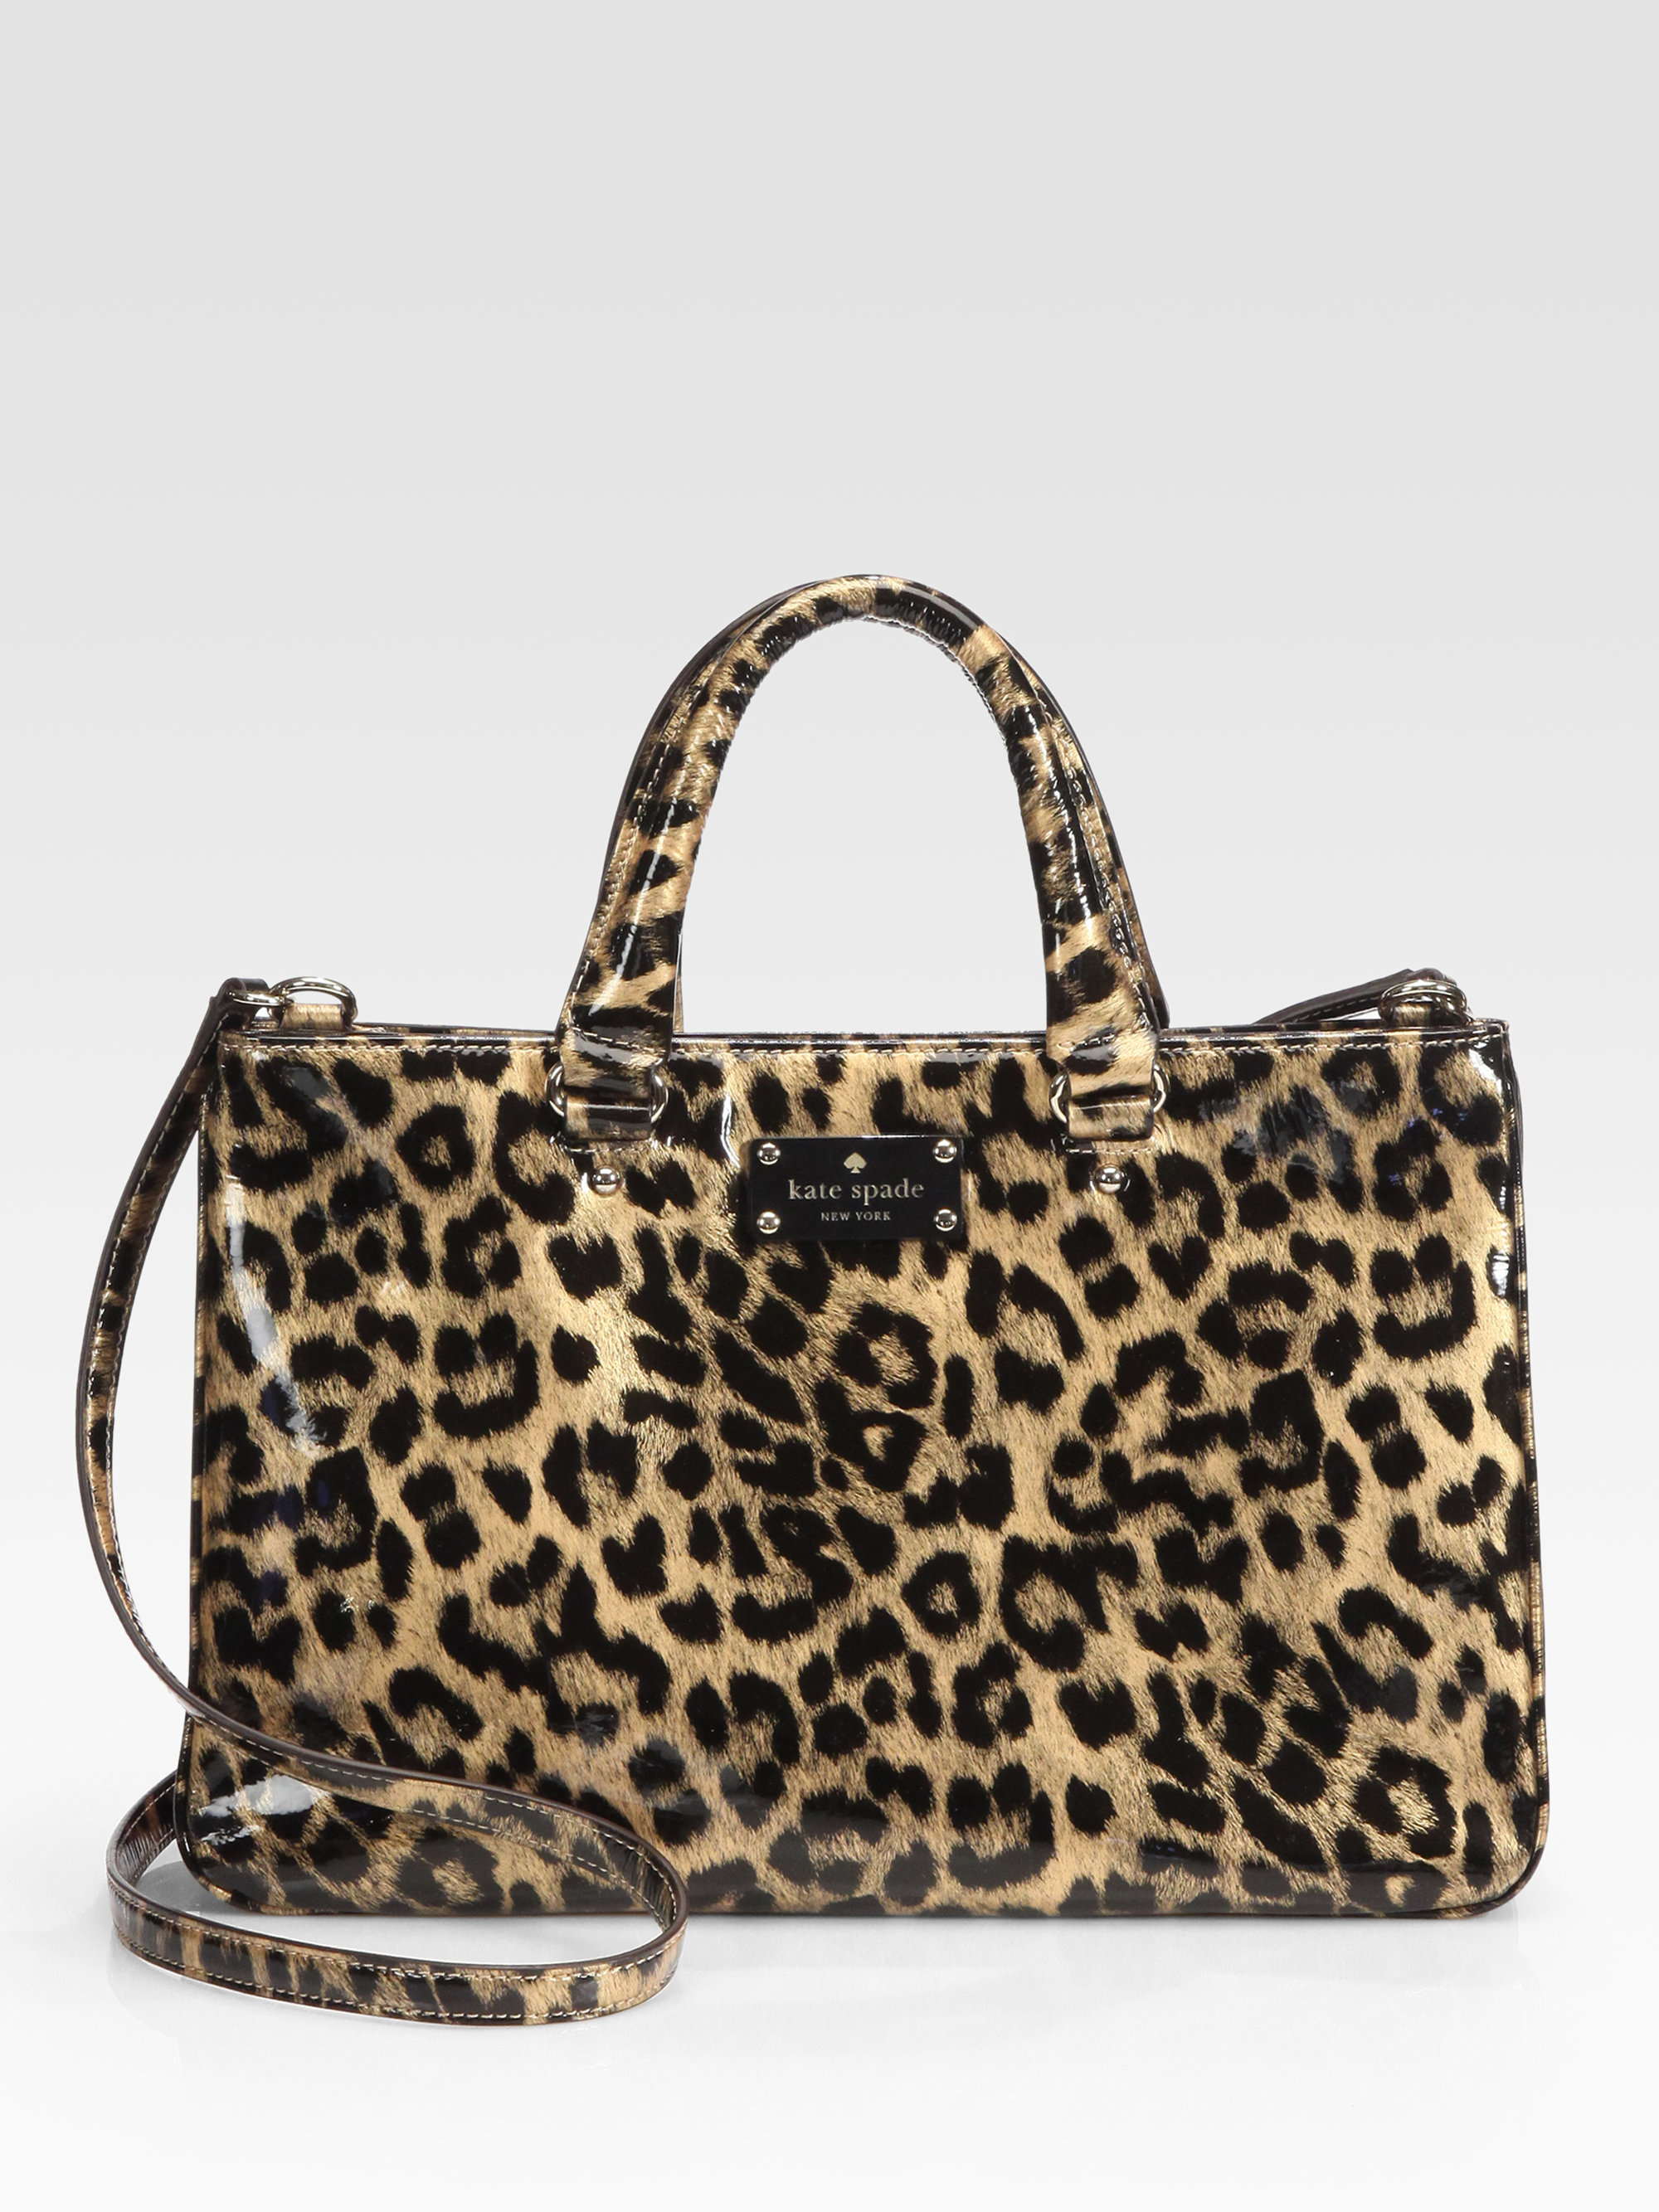 83f3d1a51305 Animal Print Leather Tote Bags | Stanford Center for Opportunity ...